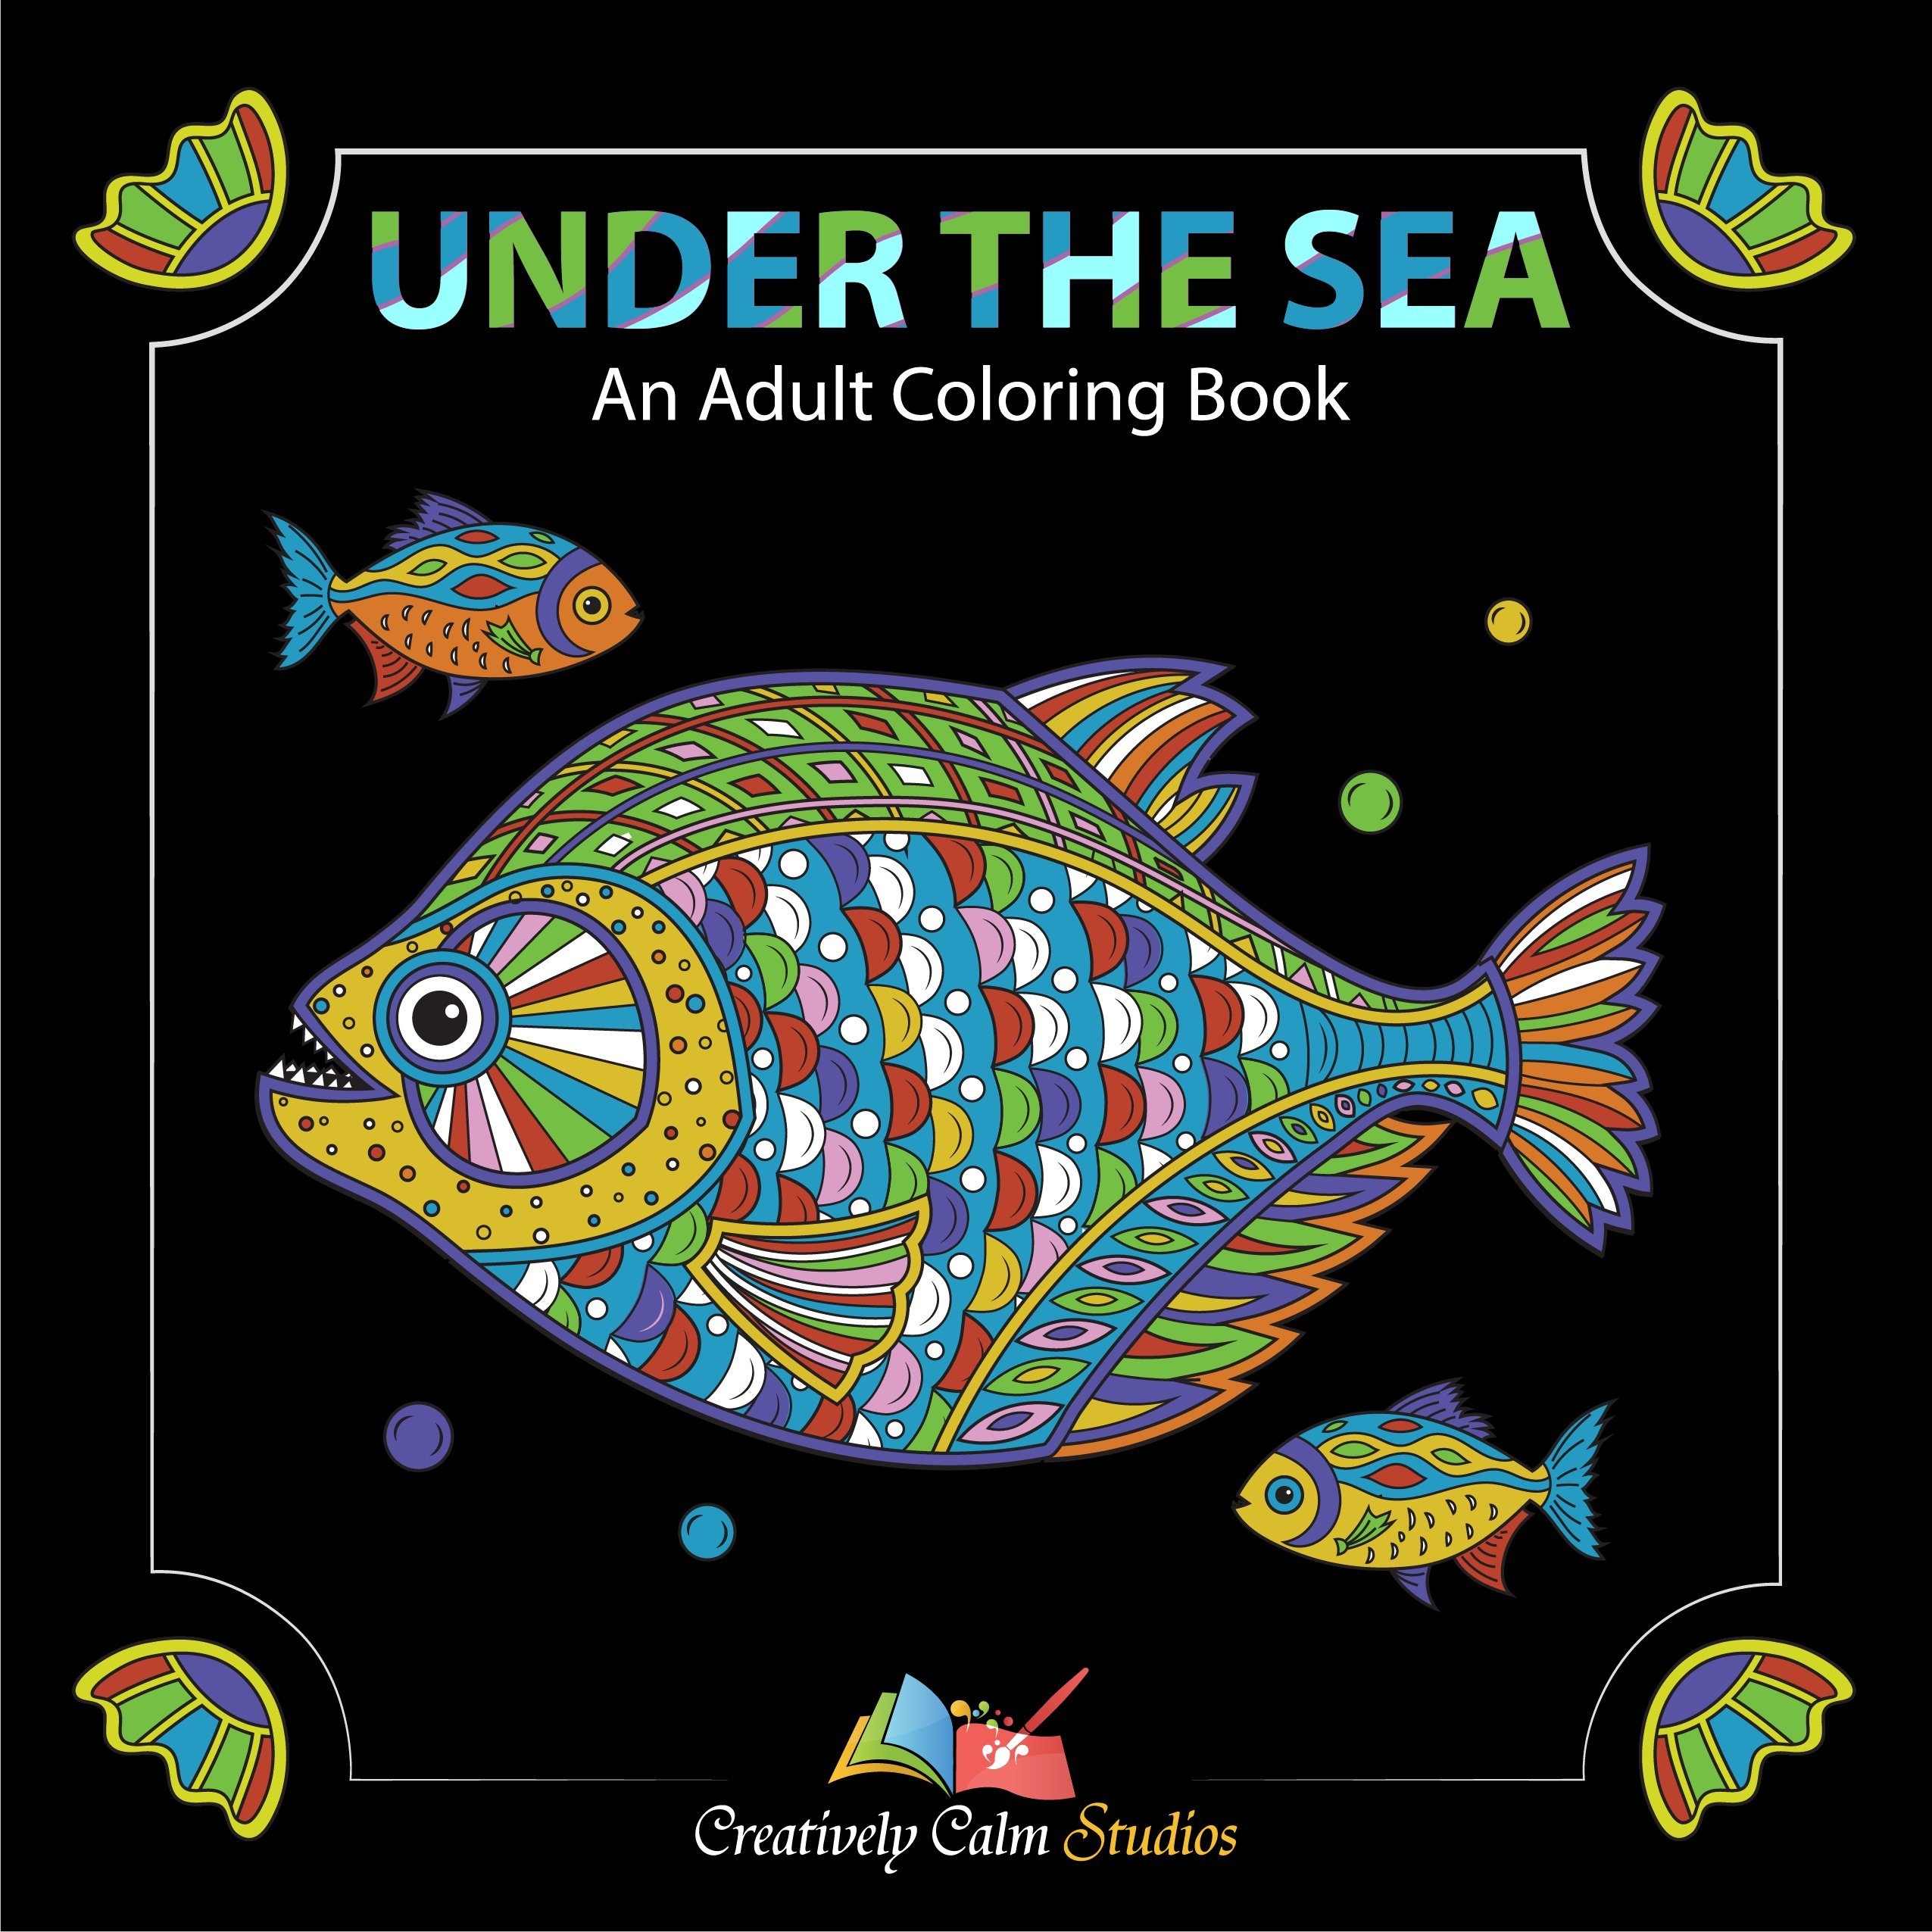 Under the sea coloring book for adults - Creatively Calm Studios Adult 3 Coloring Books Set With 120 Animal Mandala And Scenic Designs Creatively Calm Studios 0638170532320 Amazon Com Books